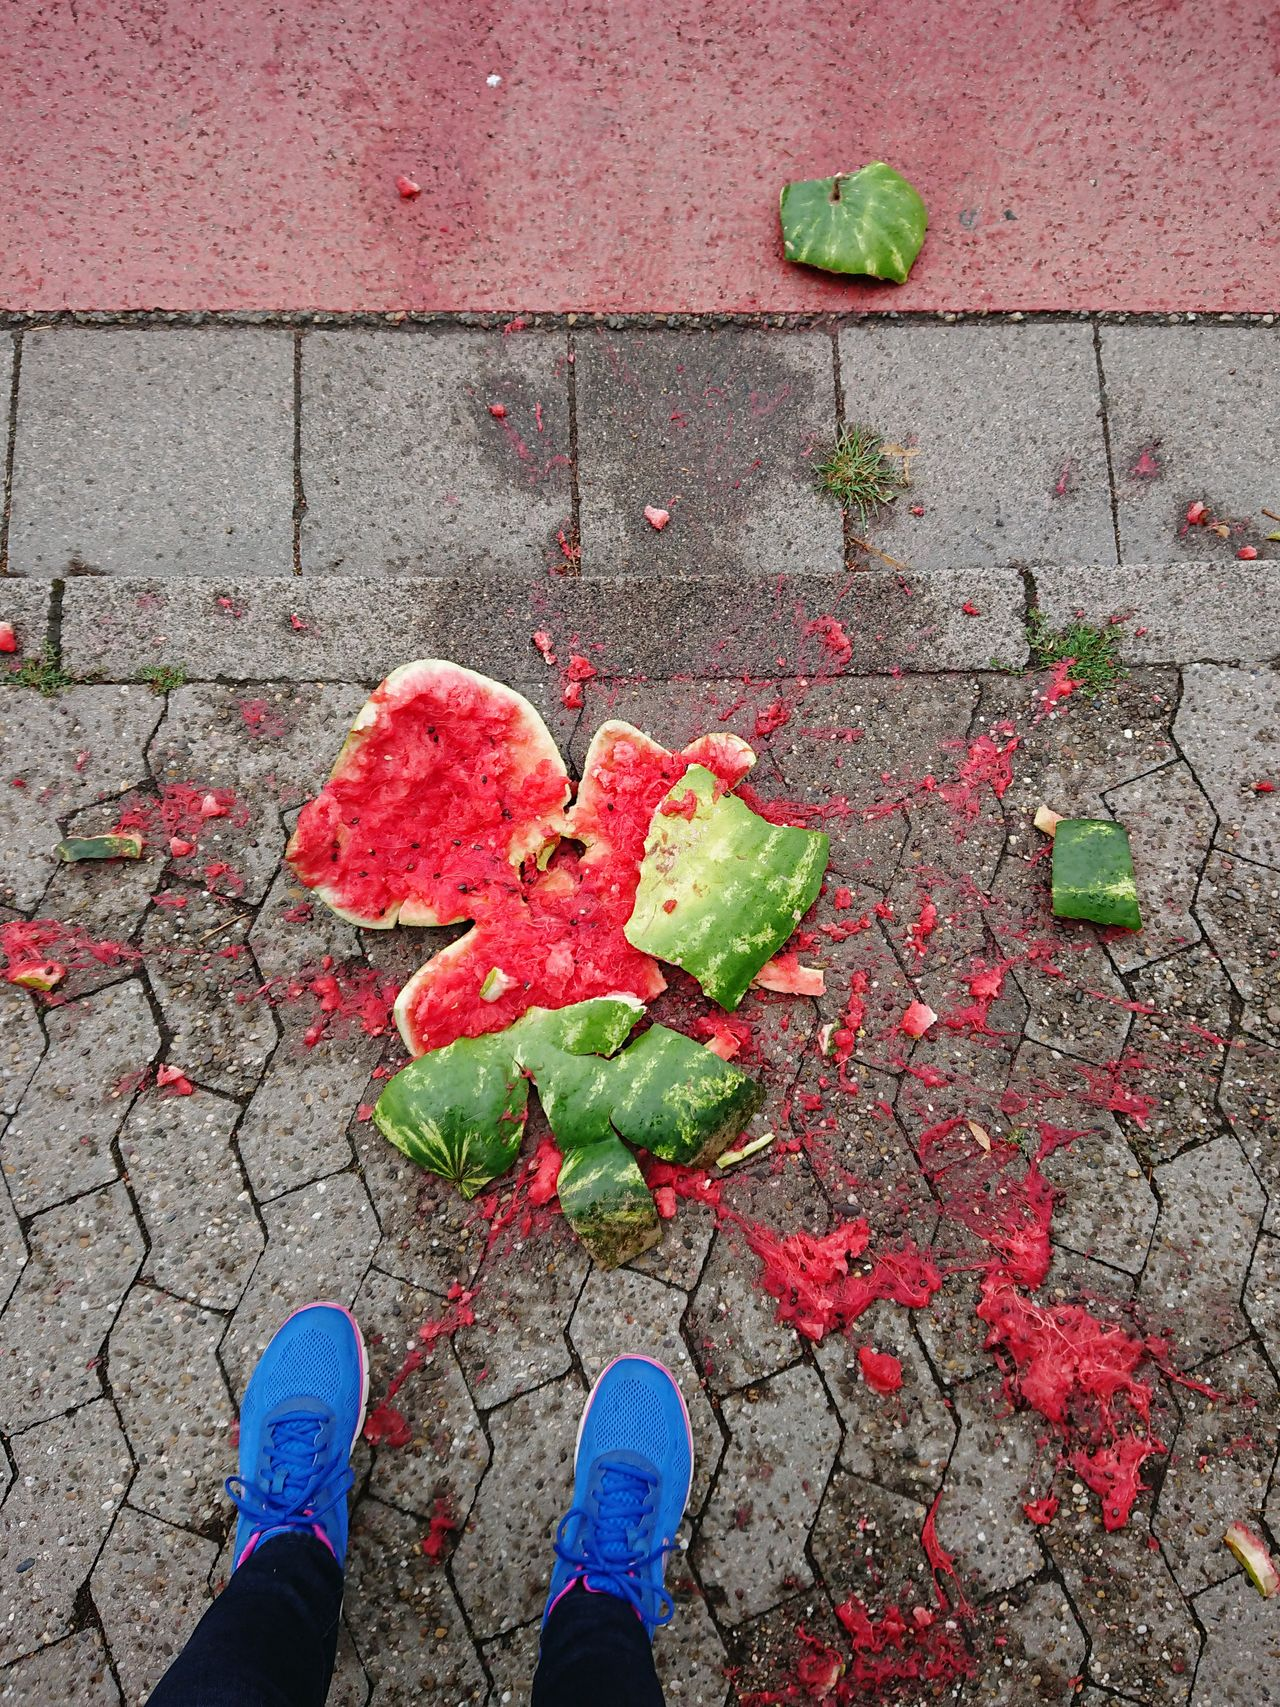 Smashed!!!...Not mine 😂 Shoe Human Leg Low Section Day High Angle View Outdoors Human Body Part One Person Standing Red Leaf Close-up Real People Nature People Woman Sommergefühle Watermelon Smashed Watermelon Neon Life